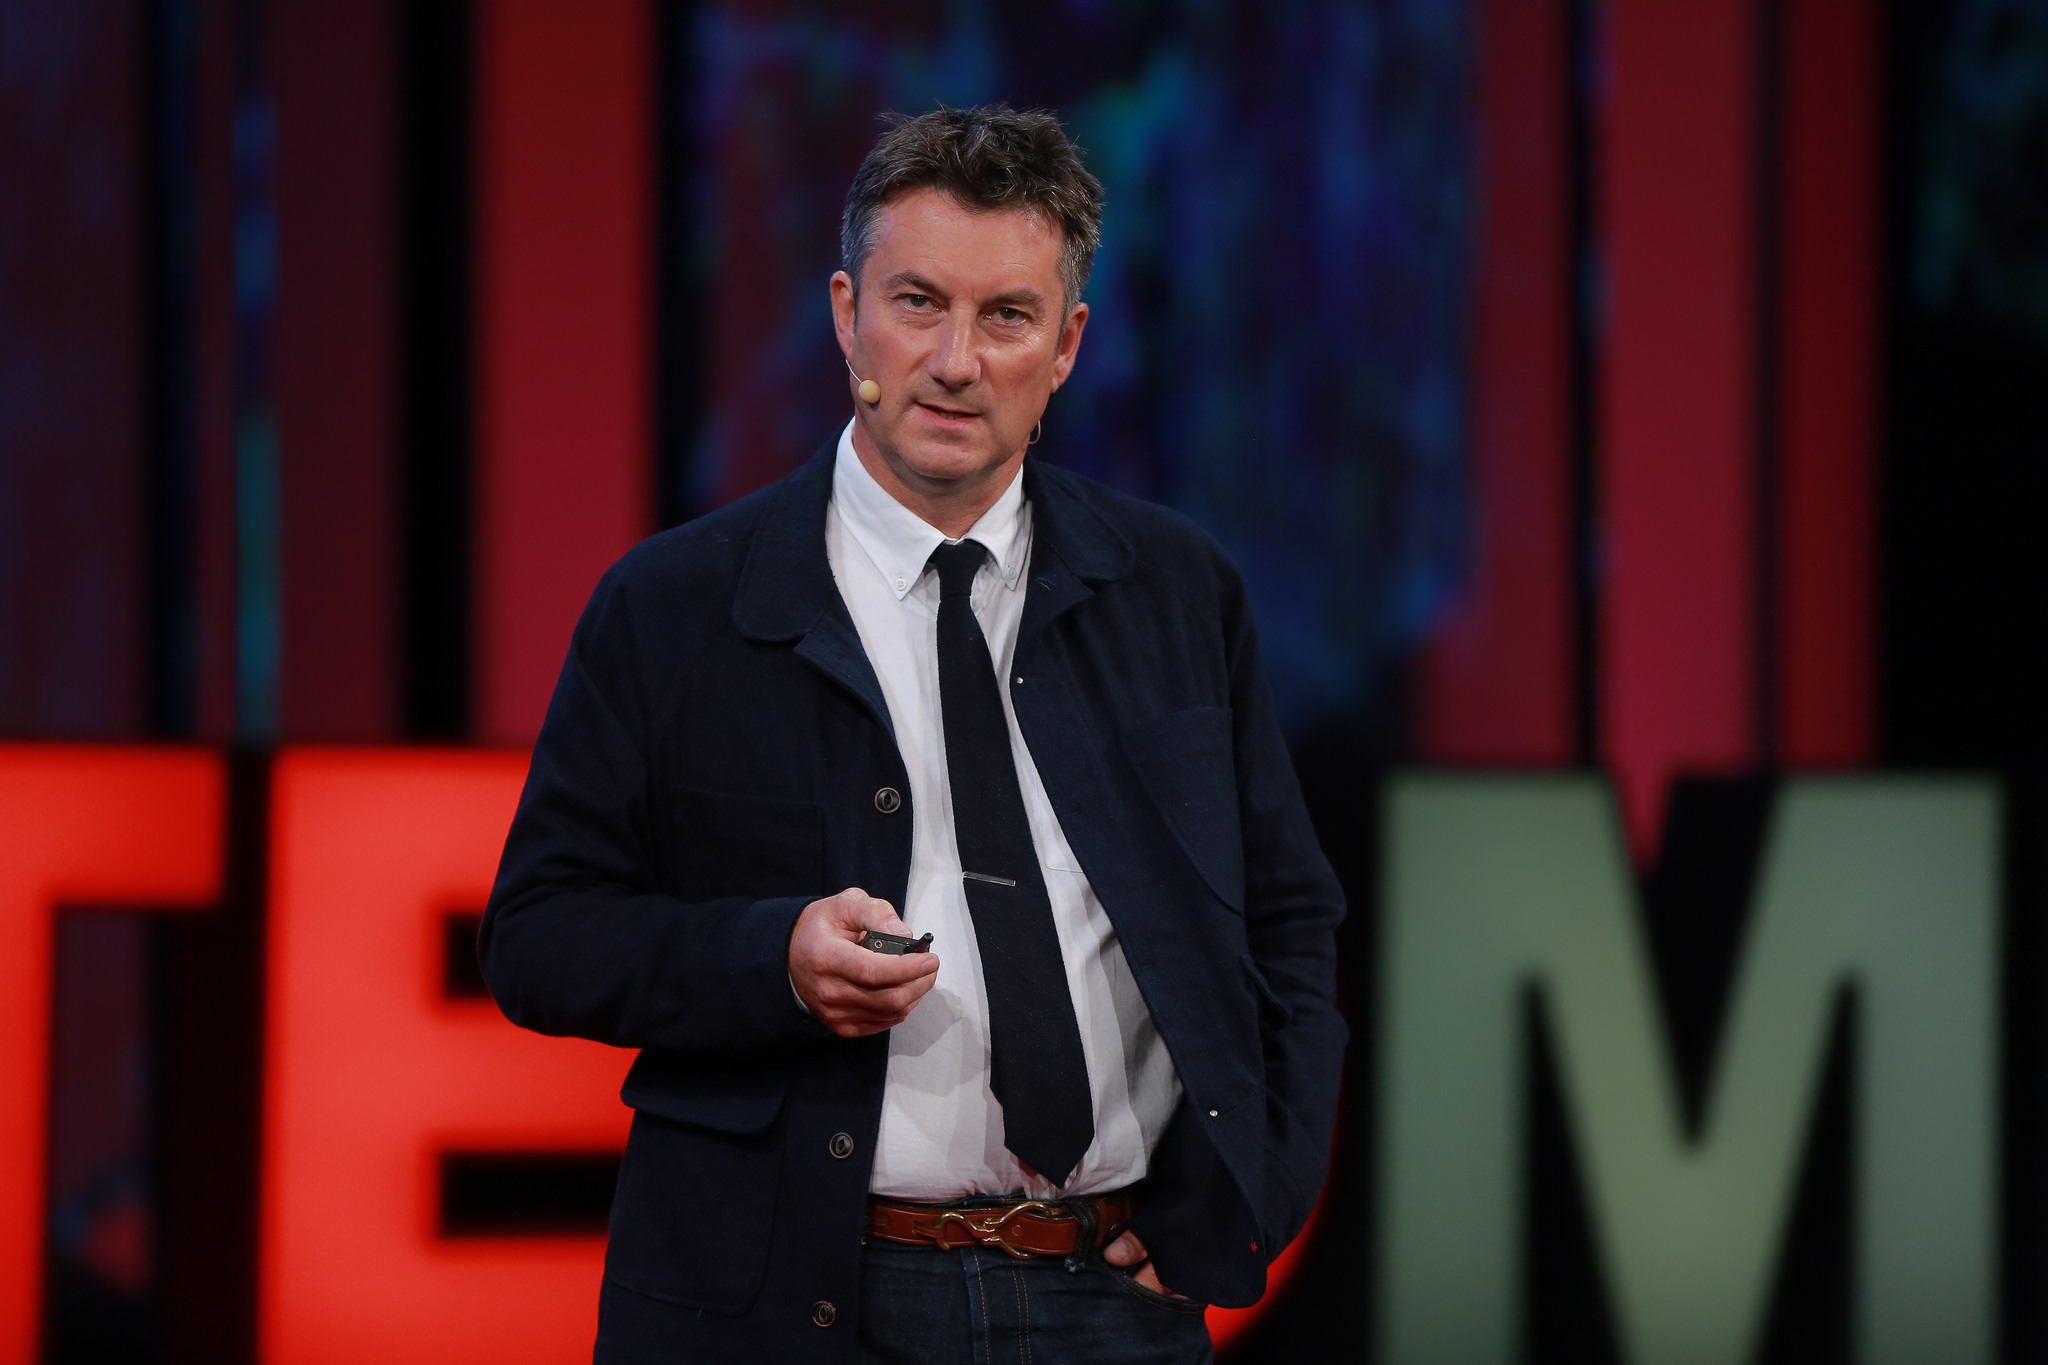 Marc Koska spoke at TEDMED 2014 about progress since his TED Talk in 2009. Photo: Courtesy of TEDMED